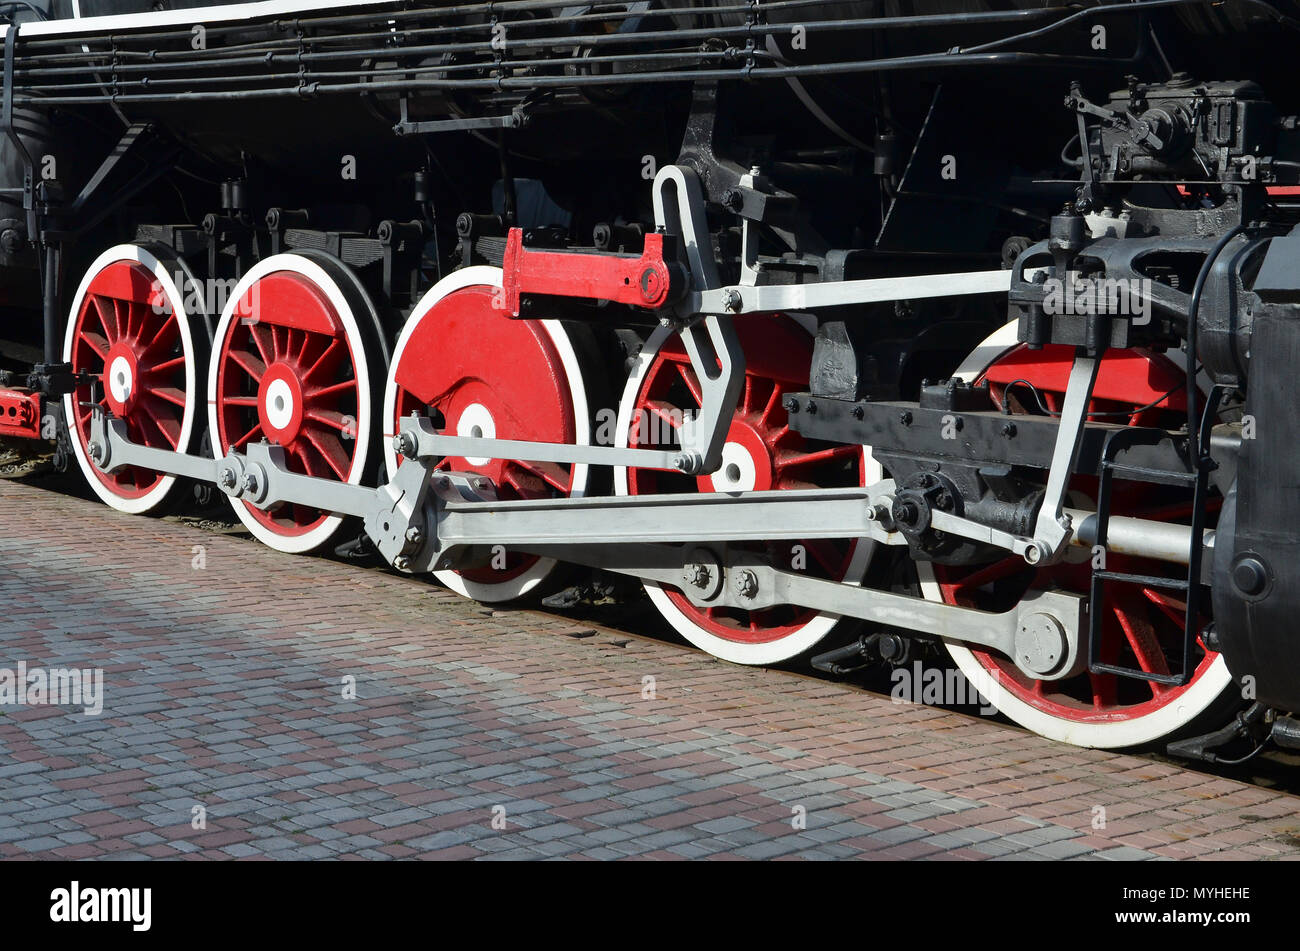 Wheels of the old black steam locomotive of Soviet times. The side of the locomotive with elements of the rotating technology of old trains Stock Photo